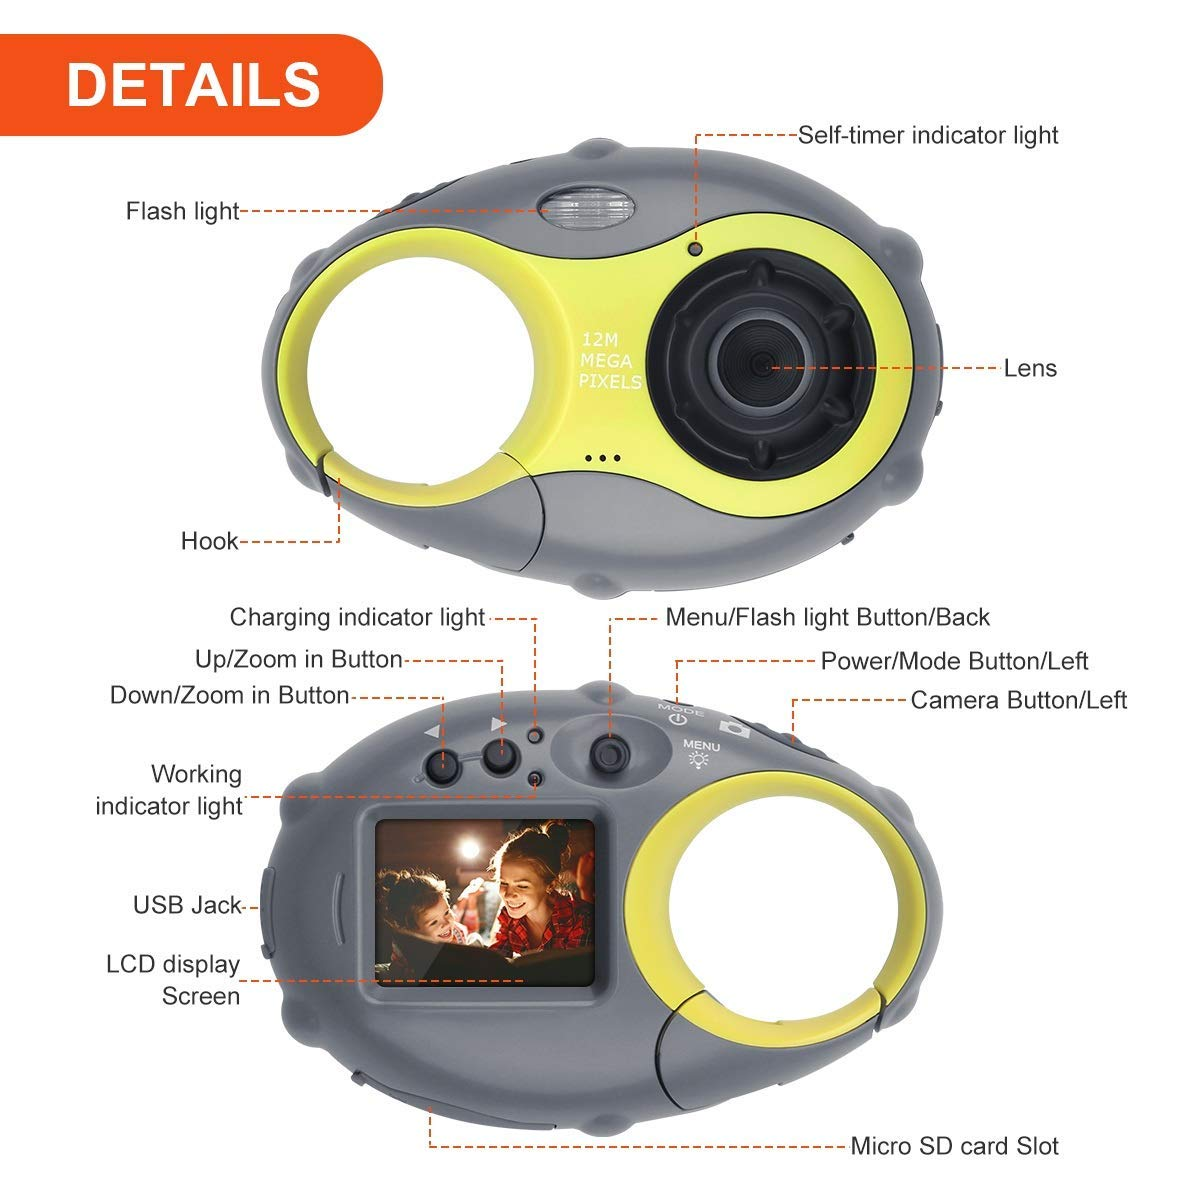 Kids Camera, Digital Camera for Children, 12MP HD Kids Video Camera with 1.5 Inch LCD Screen, 4x Digital Zoom, Flash Light, Rechargeable Battery and 8GB SD Card, Best Holiday Gift for Boys and Girls by LDF (Image #6)